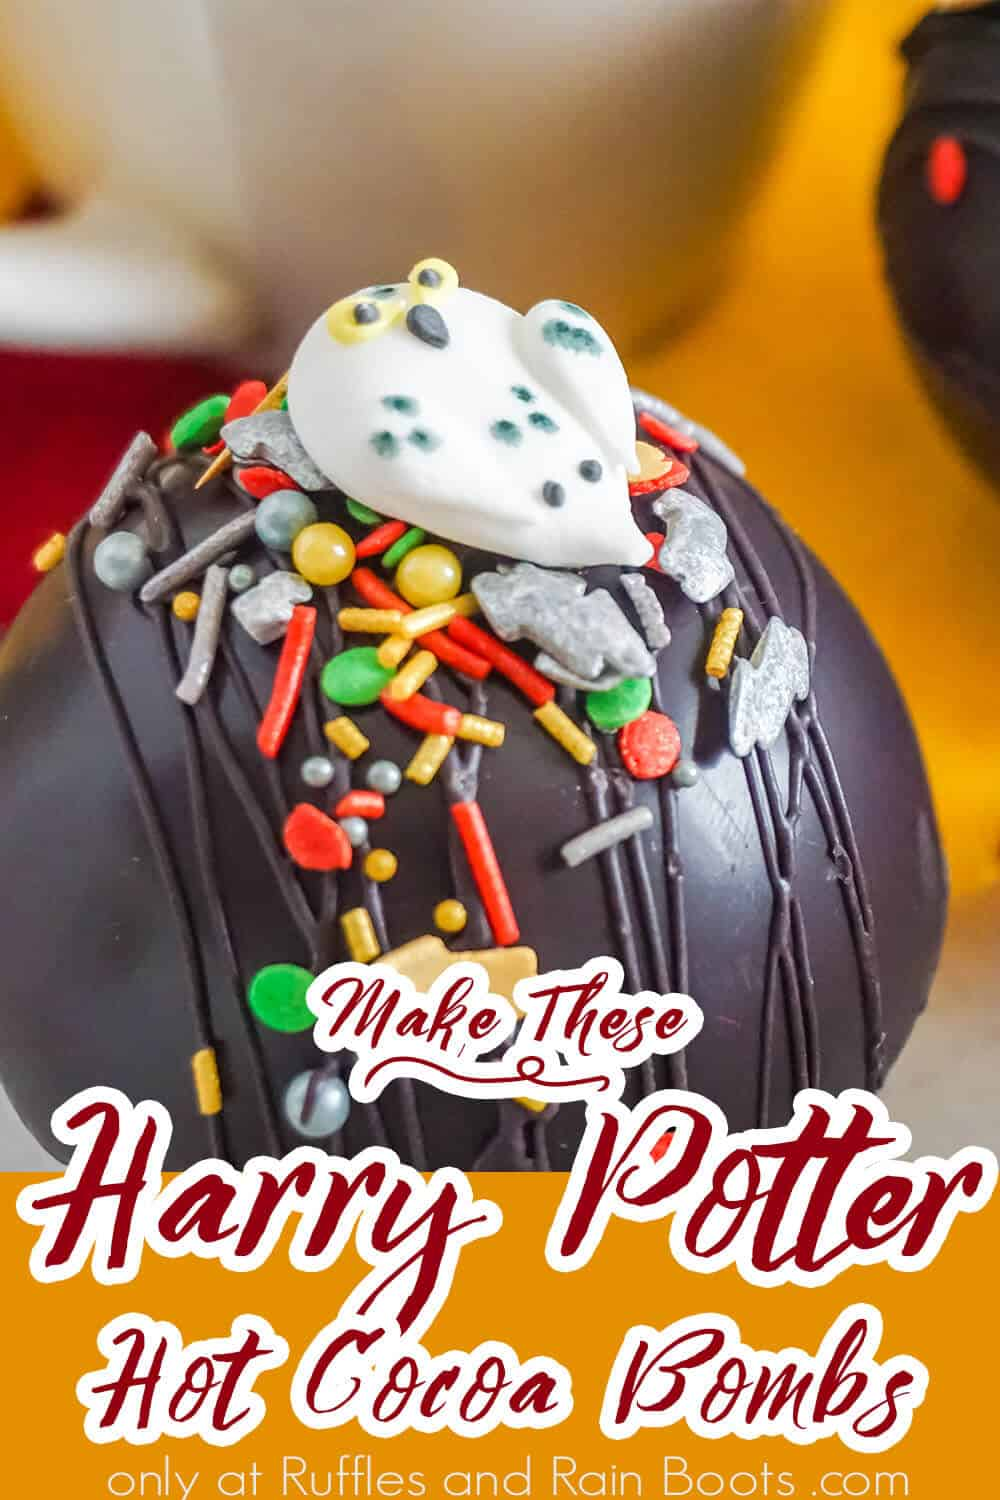 wizard hot cocoa bombs with text which reads make these harry potter hot cocoa bombs